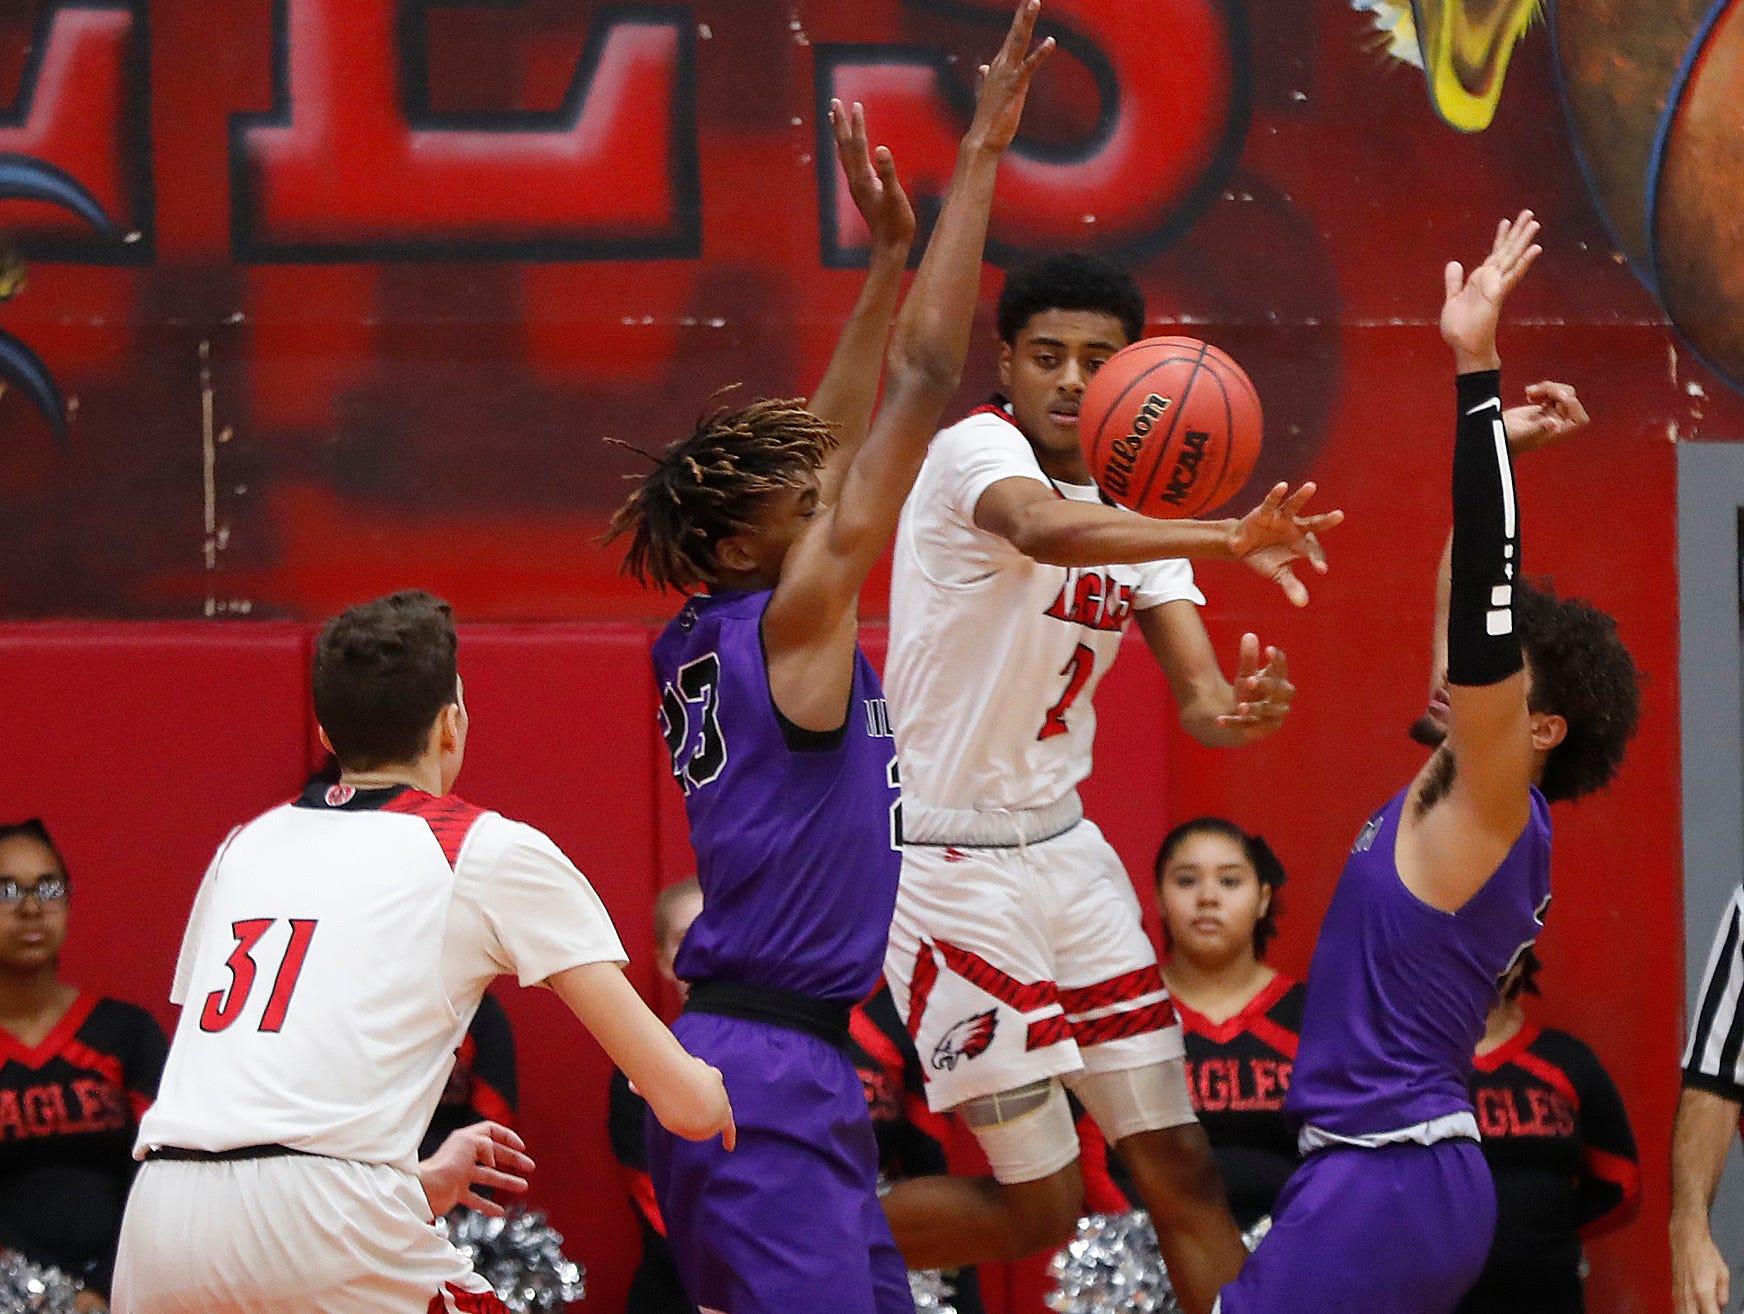 Ironwood's Dominic Gonzalez (2) passes out against Millennium's DaRon Holmes (23) during the first half of the 5A state quarterfinal game at Ironwood High School in Glendale, Ariz. on February 15, 2019.